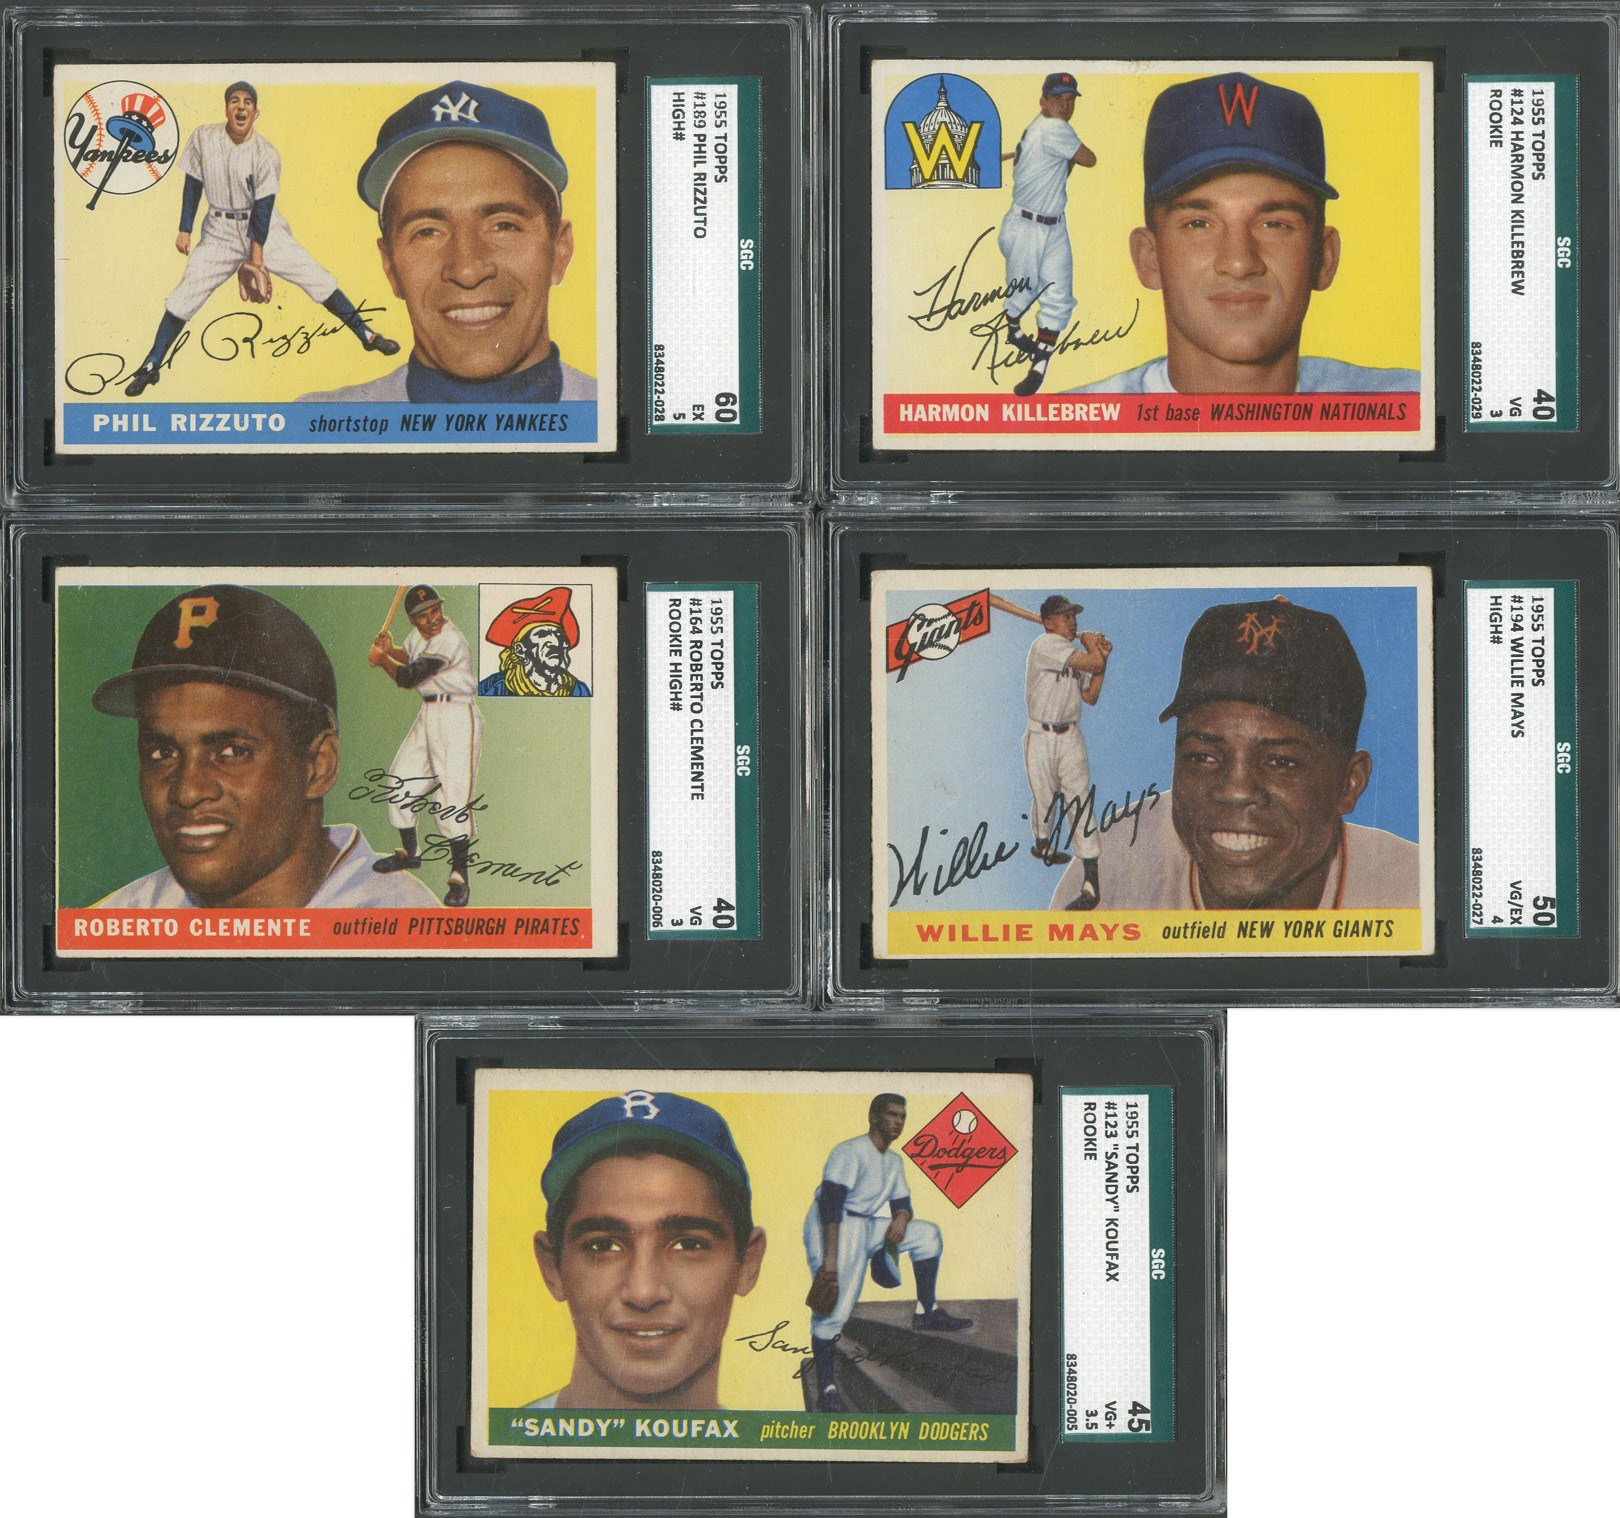 1955 Topps Complete Set (206 Cards - 5 SGC Graded)